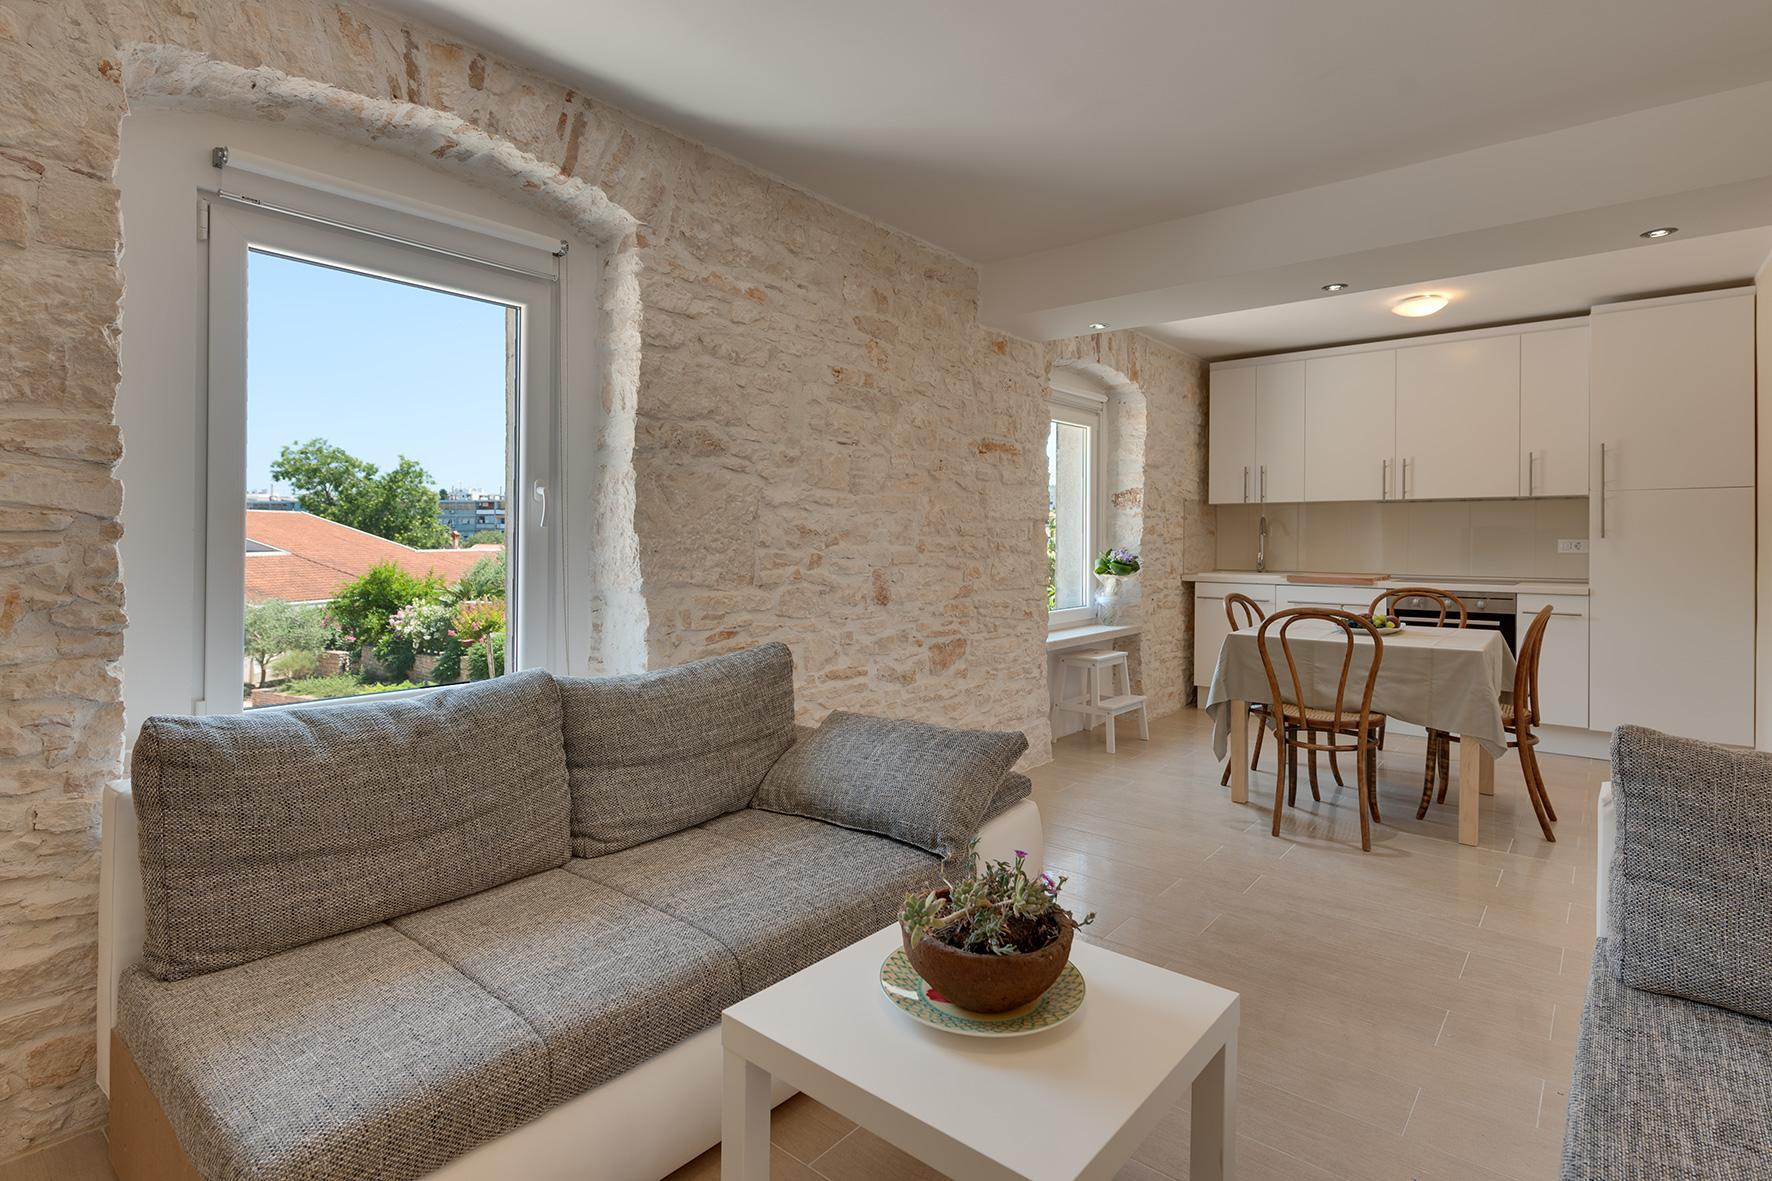 Apartment Lungomare 5 min walk from the beach